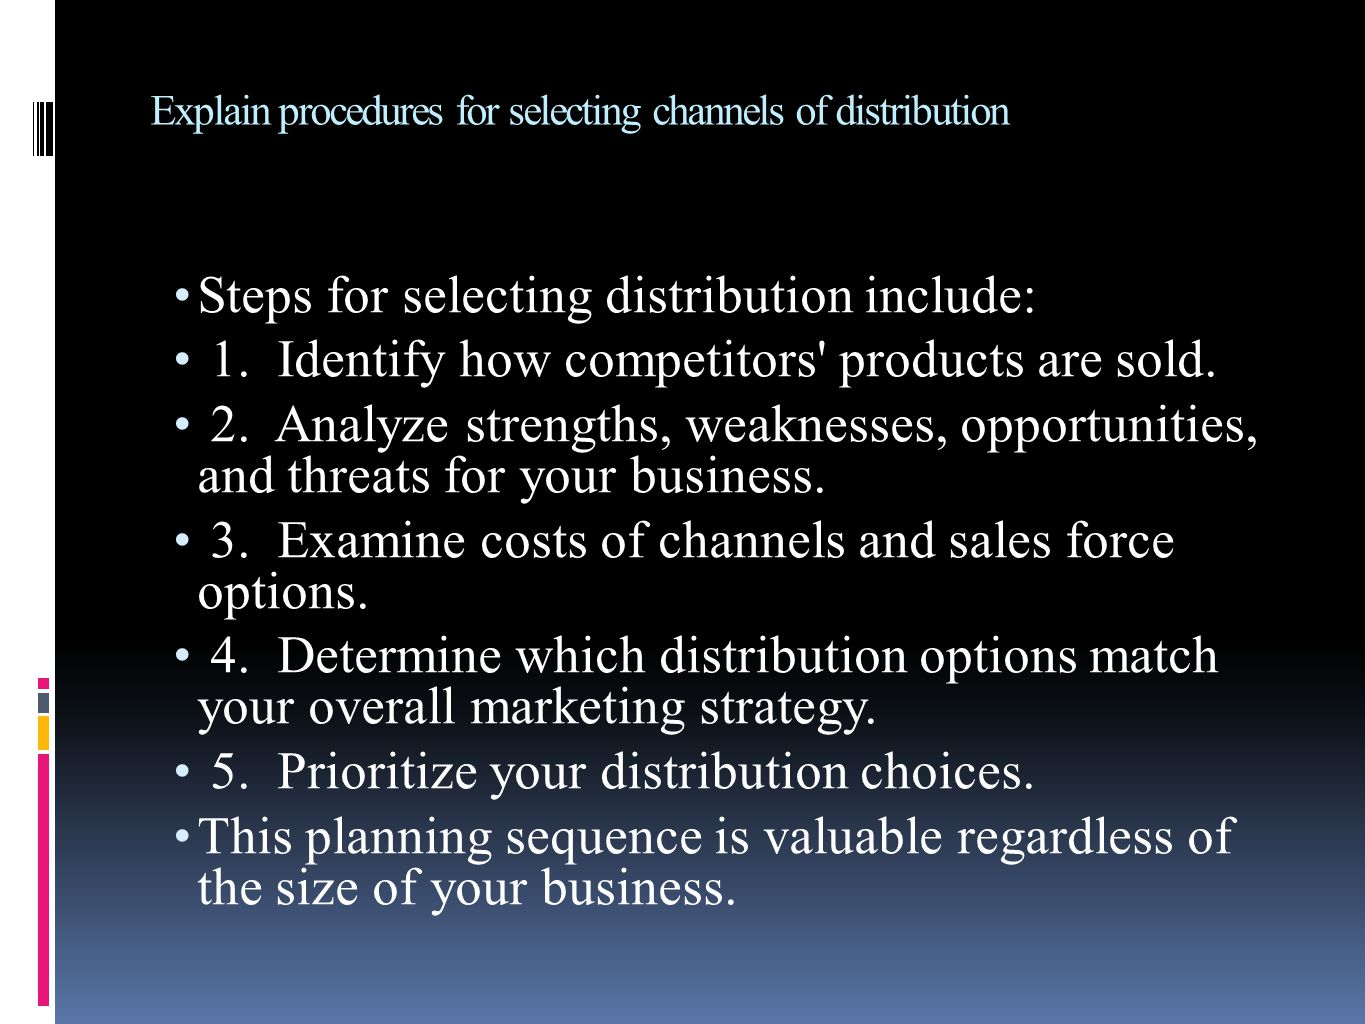 Explain procedures for selecting channels of distribution